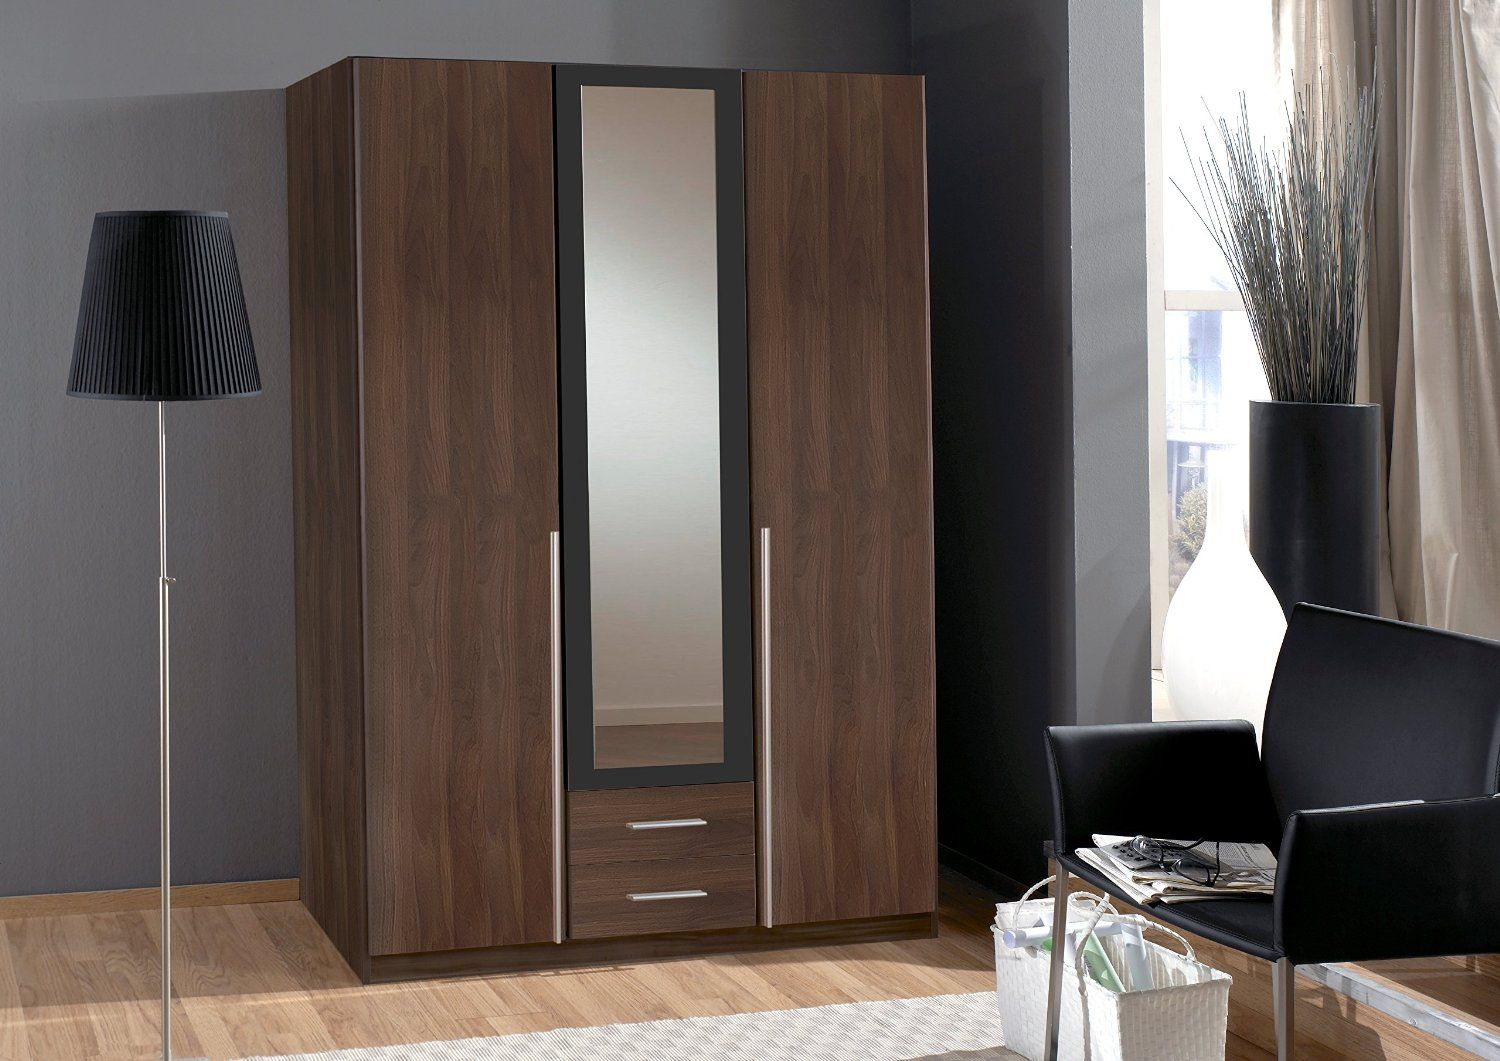 sale ballstad ikea white best furniture pax com wardrobe bedroom brown wardrobes cm uk black of awesome on badotcom